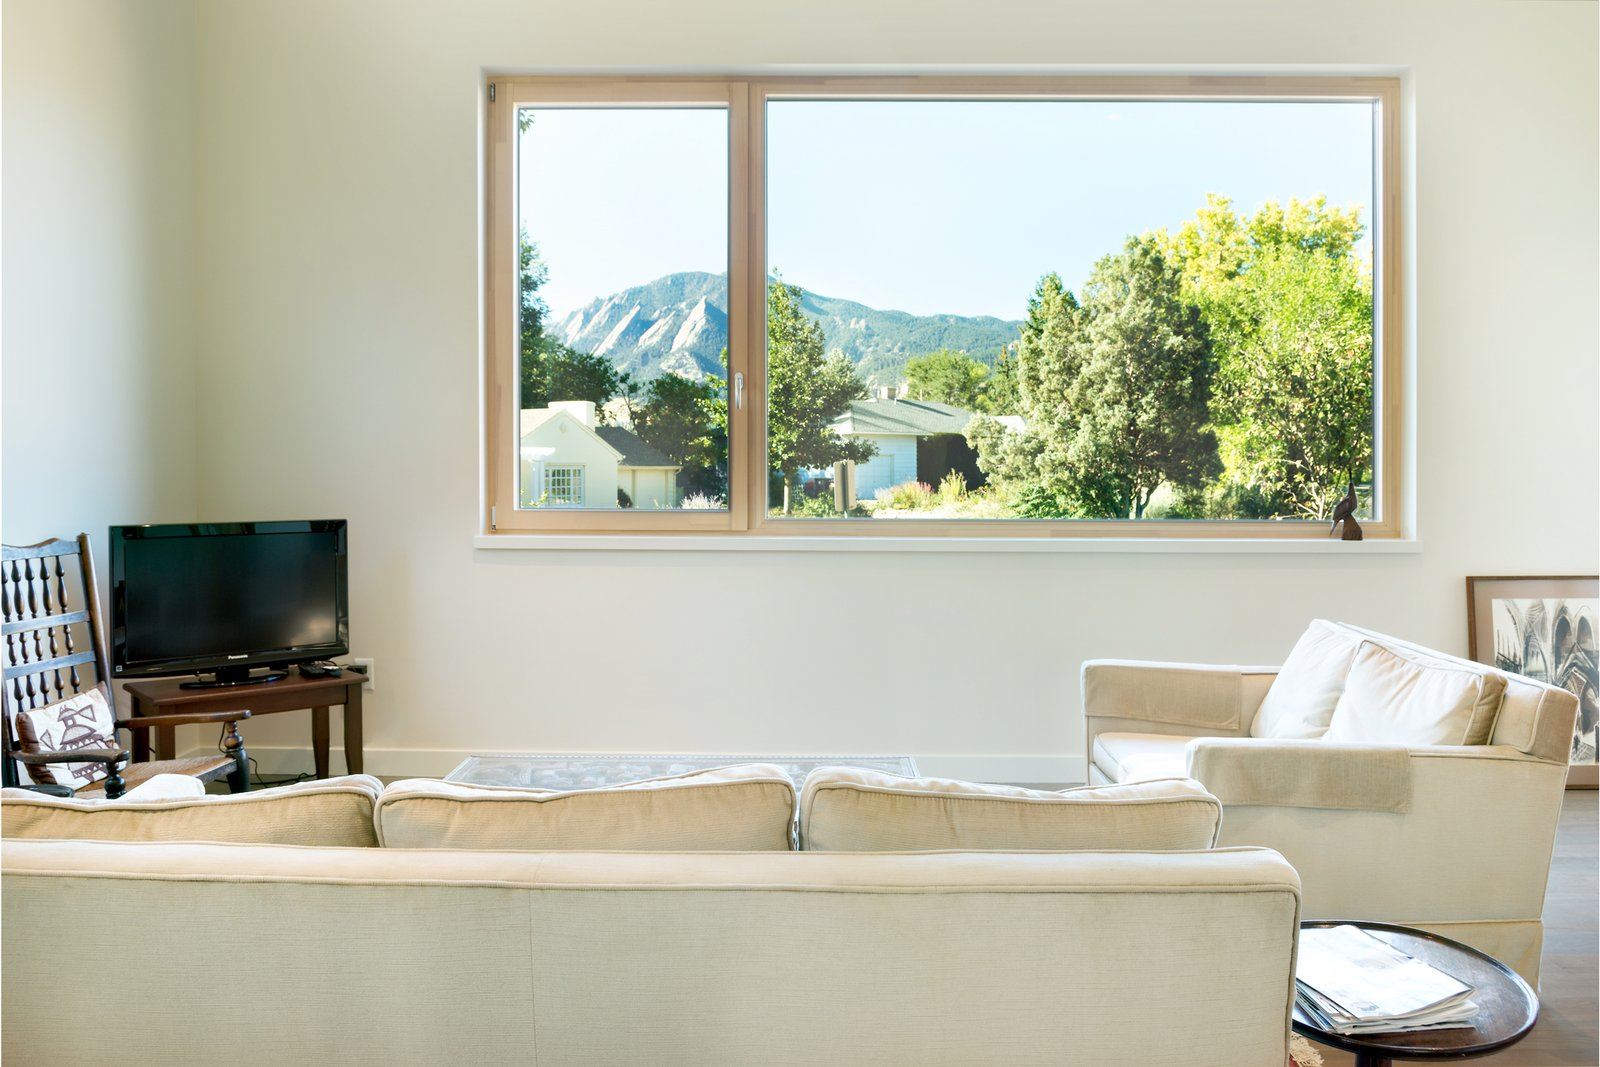 Zola Tilt & Turn and Fixed Window - Zola Thermo Clad  Tilt & Turn windows can be very large, with each sash up to five and a half feet wide. Zola Tilt & Turn windows have a multi-point locking mechanism providing safety and superb air sealing.  Sunset by Zola Windows